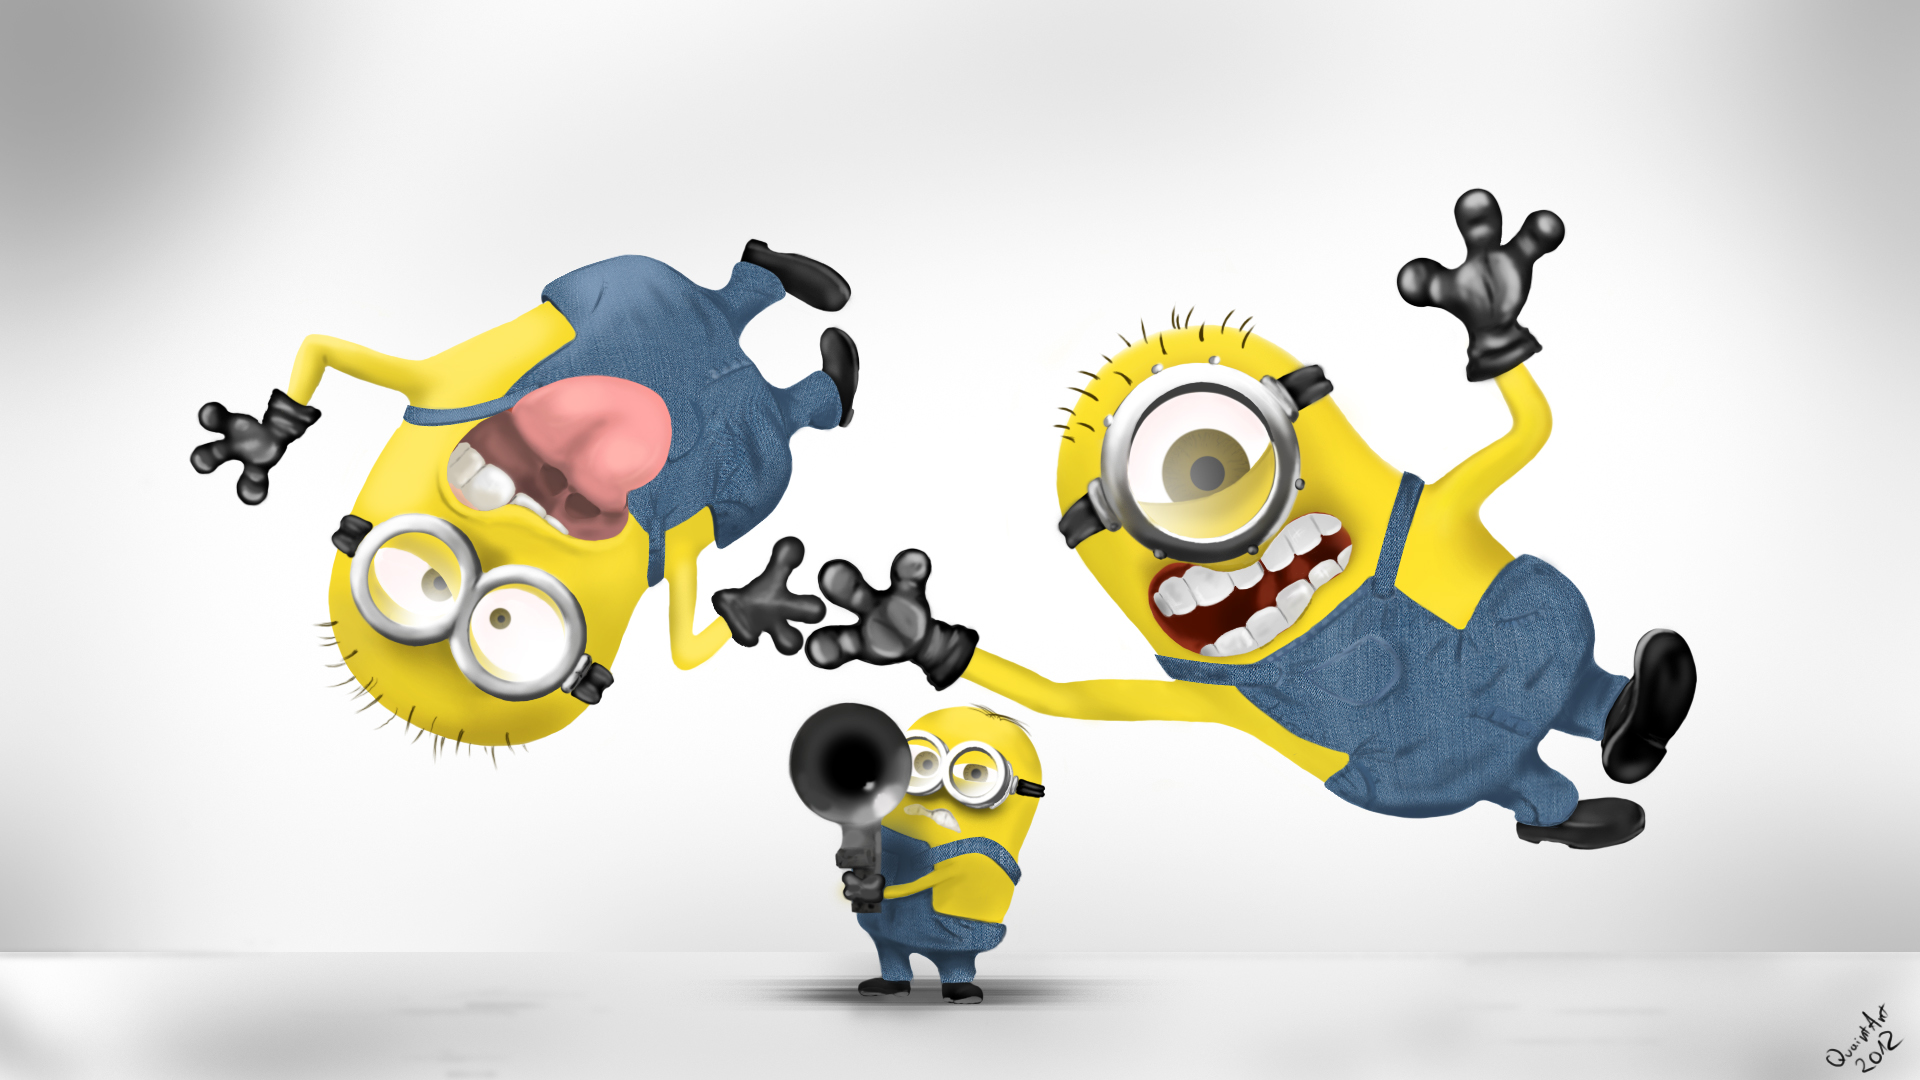 Despicable me 2 minions wallpaper 1920x1080 - Despicable me minion screensaver ...